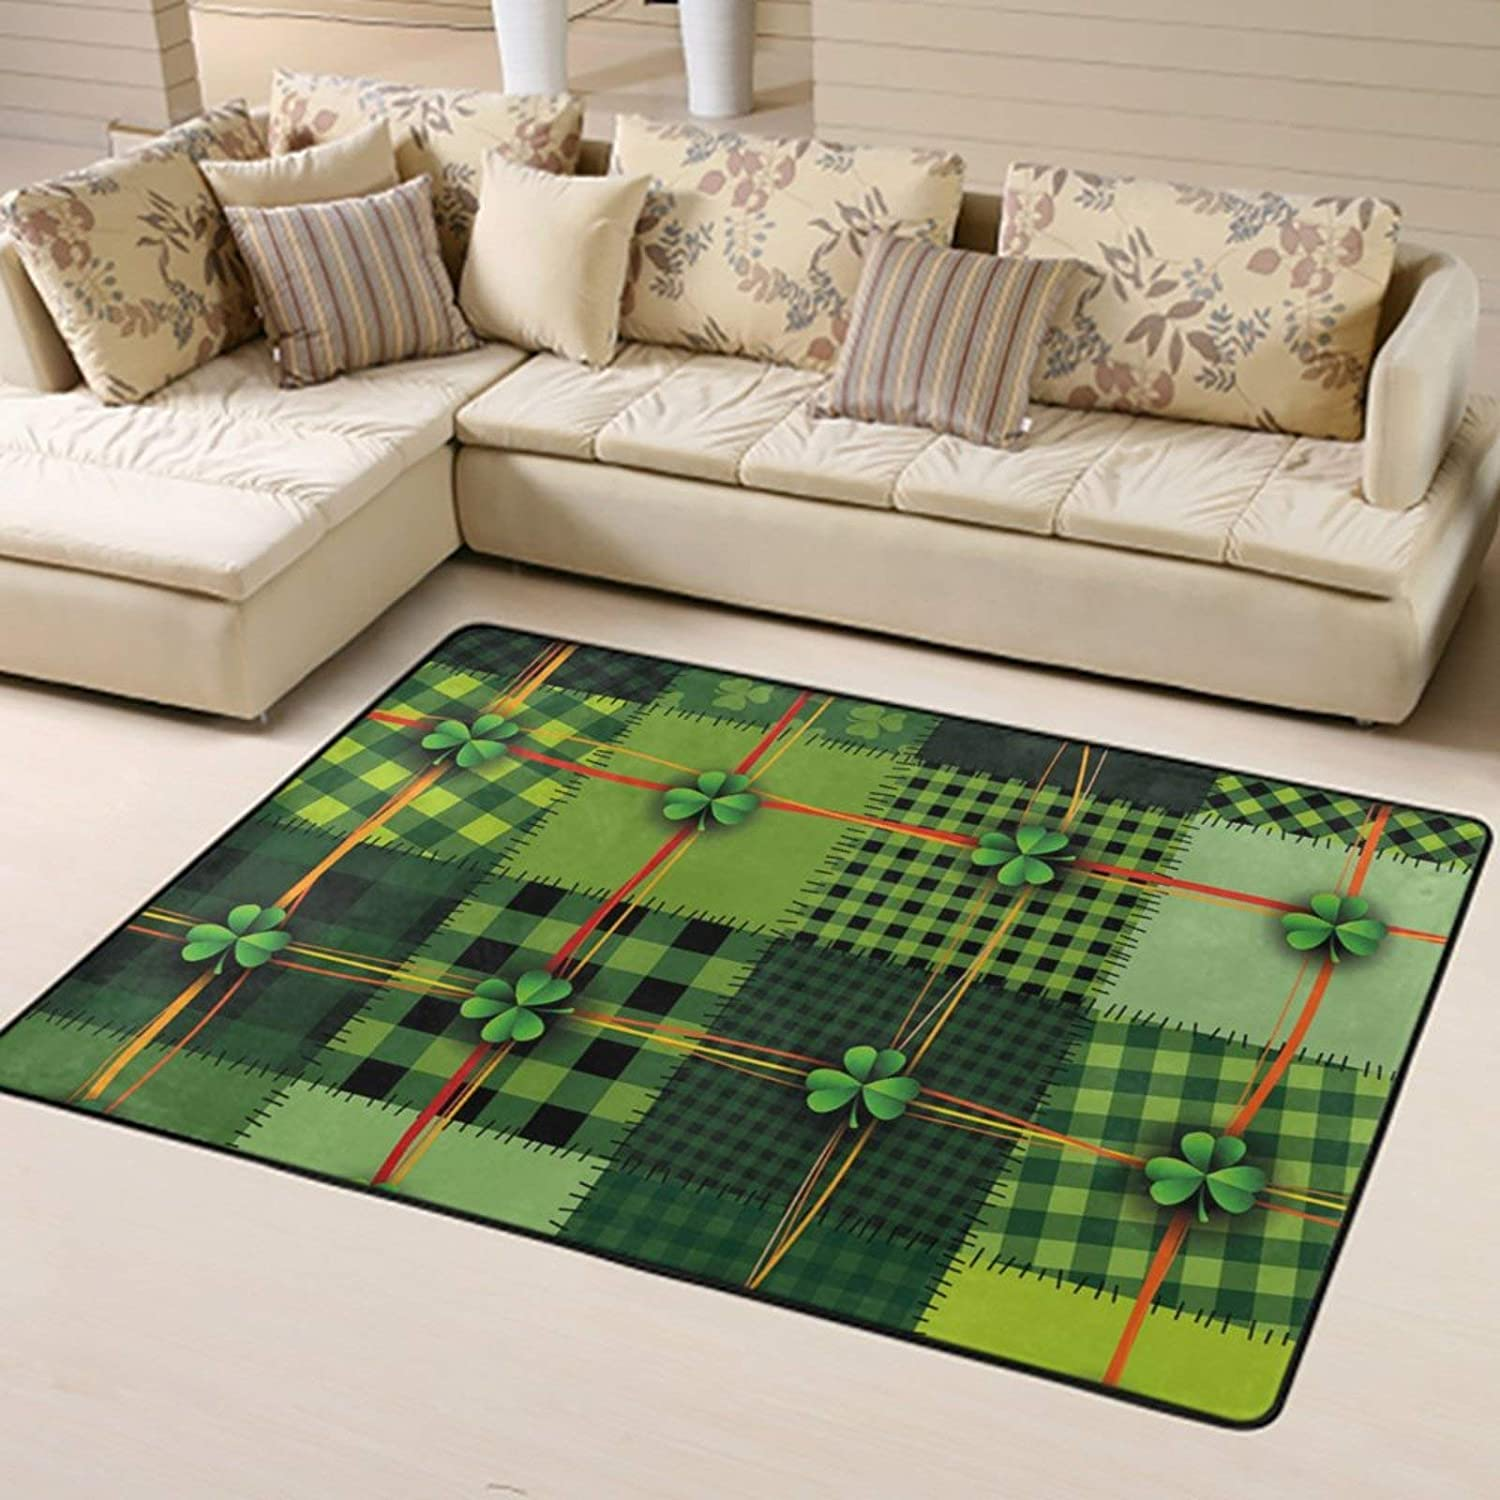 Area Rug Modern Unique Area Carpet Anti Slip Carpets for Bathroom,Office, Dining Room, Indoor Thick Soft Carpets White-Lucky Grass Four Leaf Clover Plaid Pattern gr3 Rug